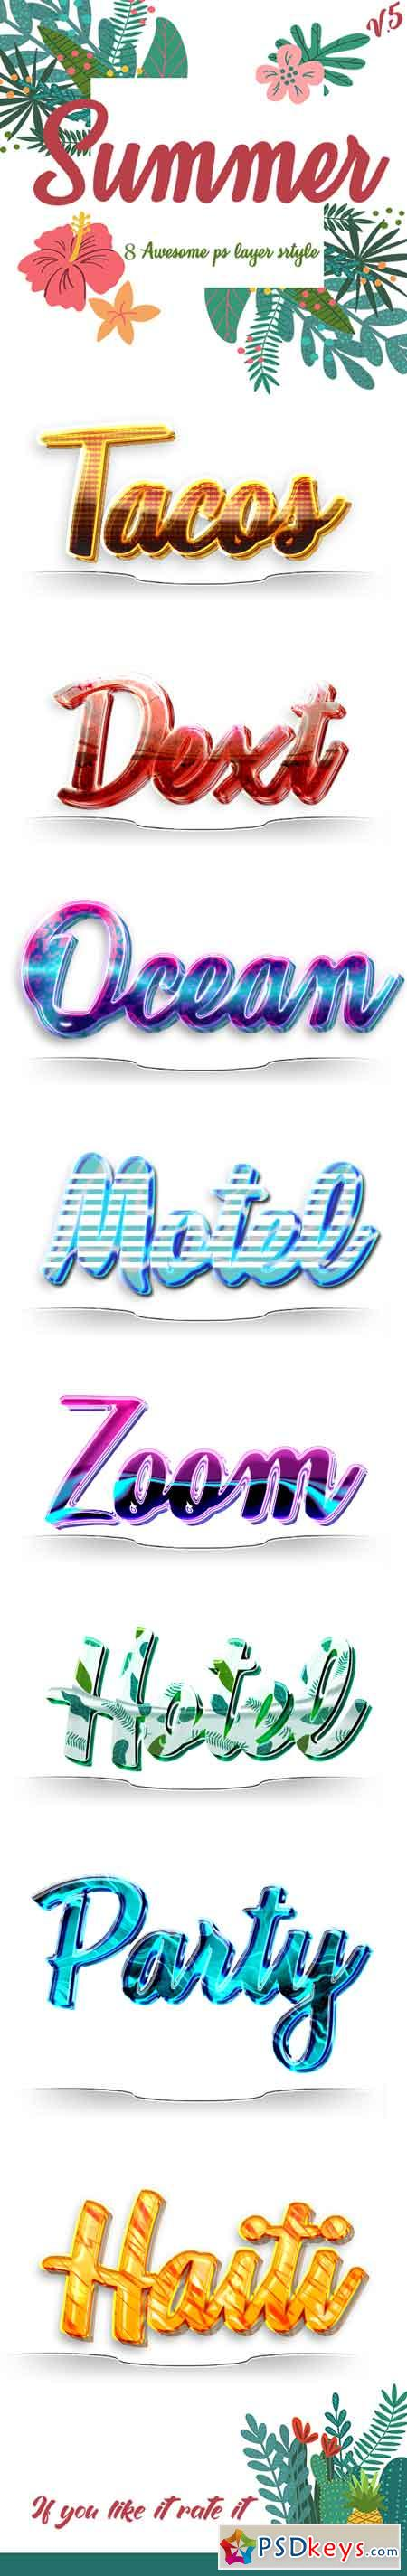 Summer Text Effects v 5 22465575